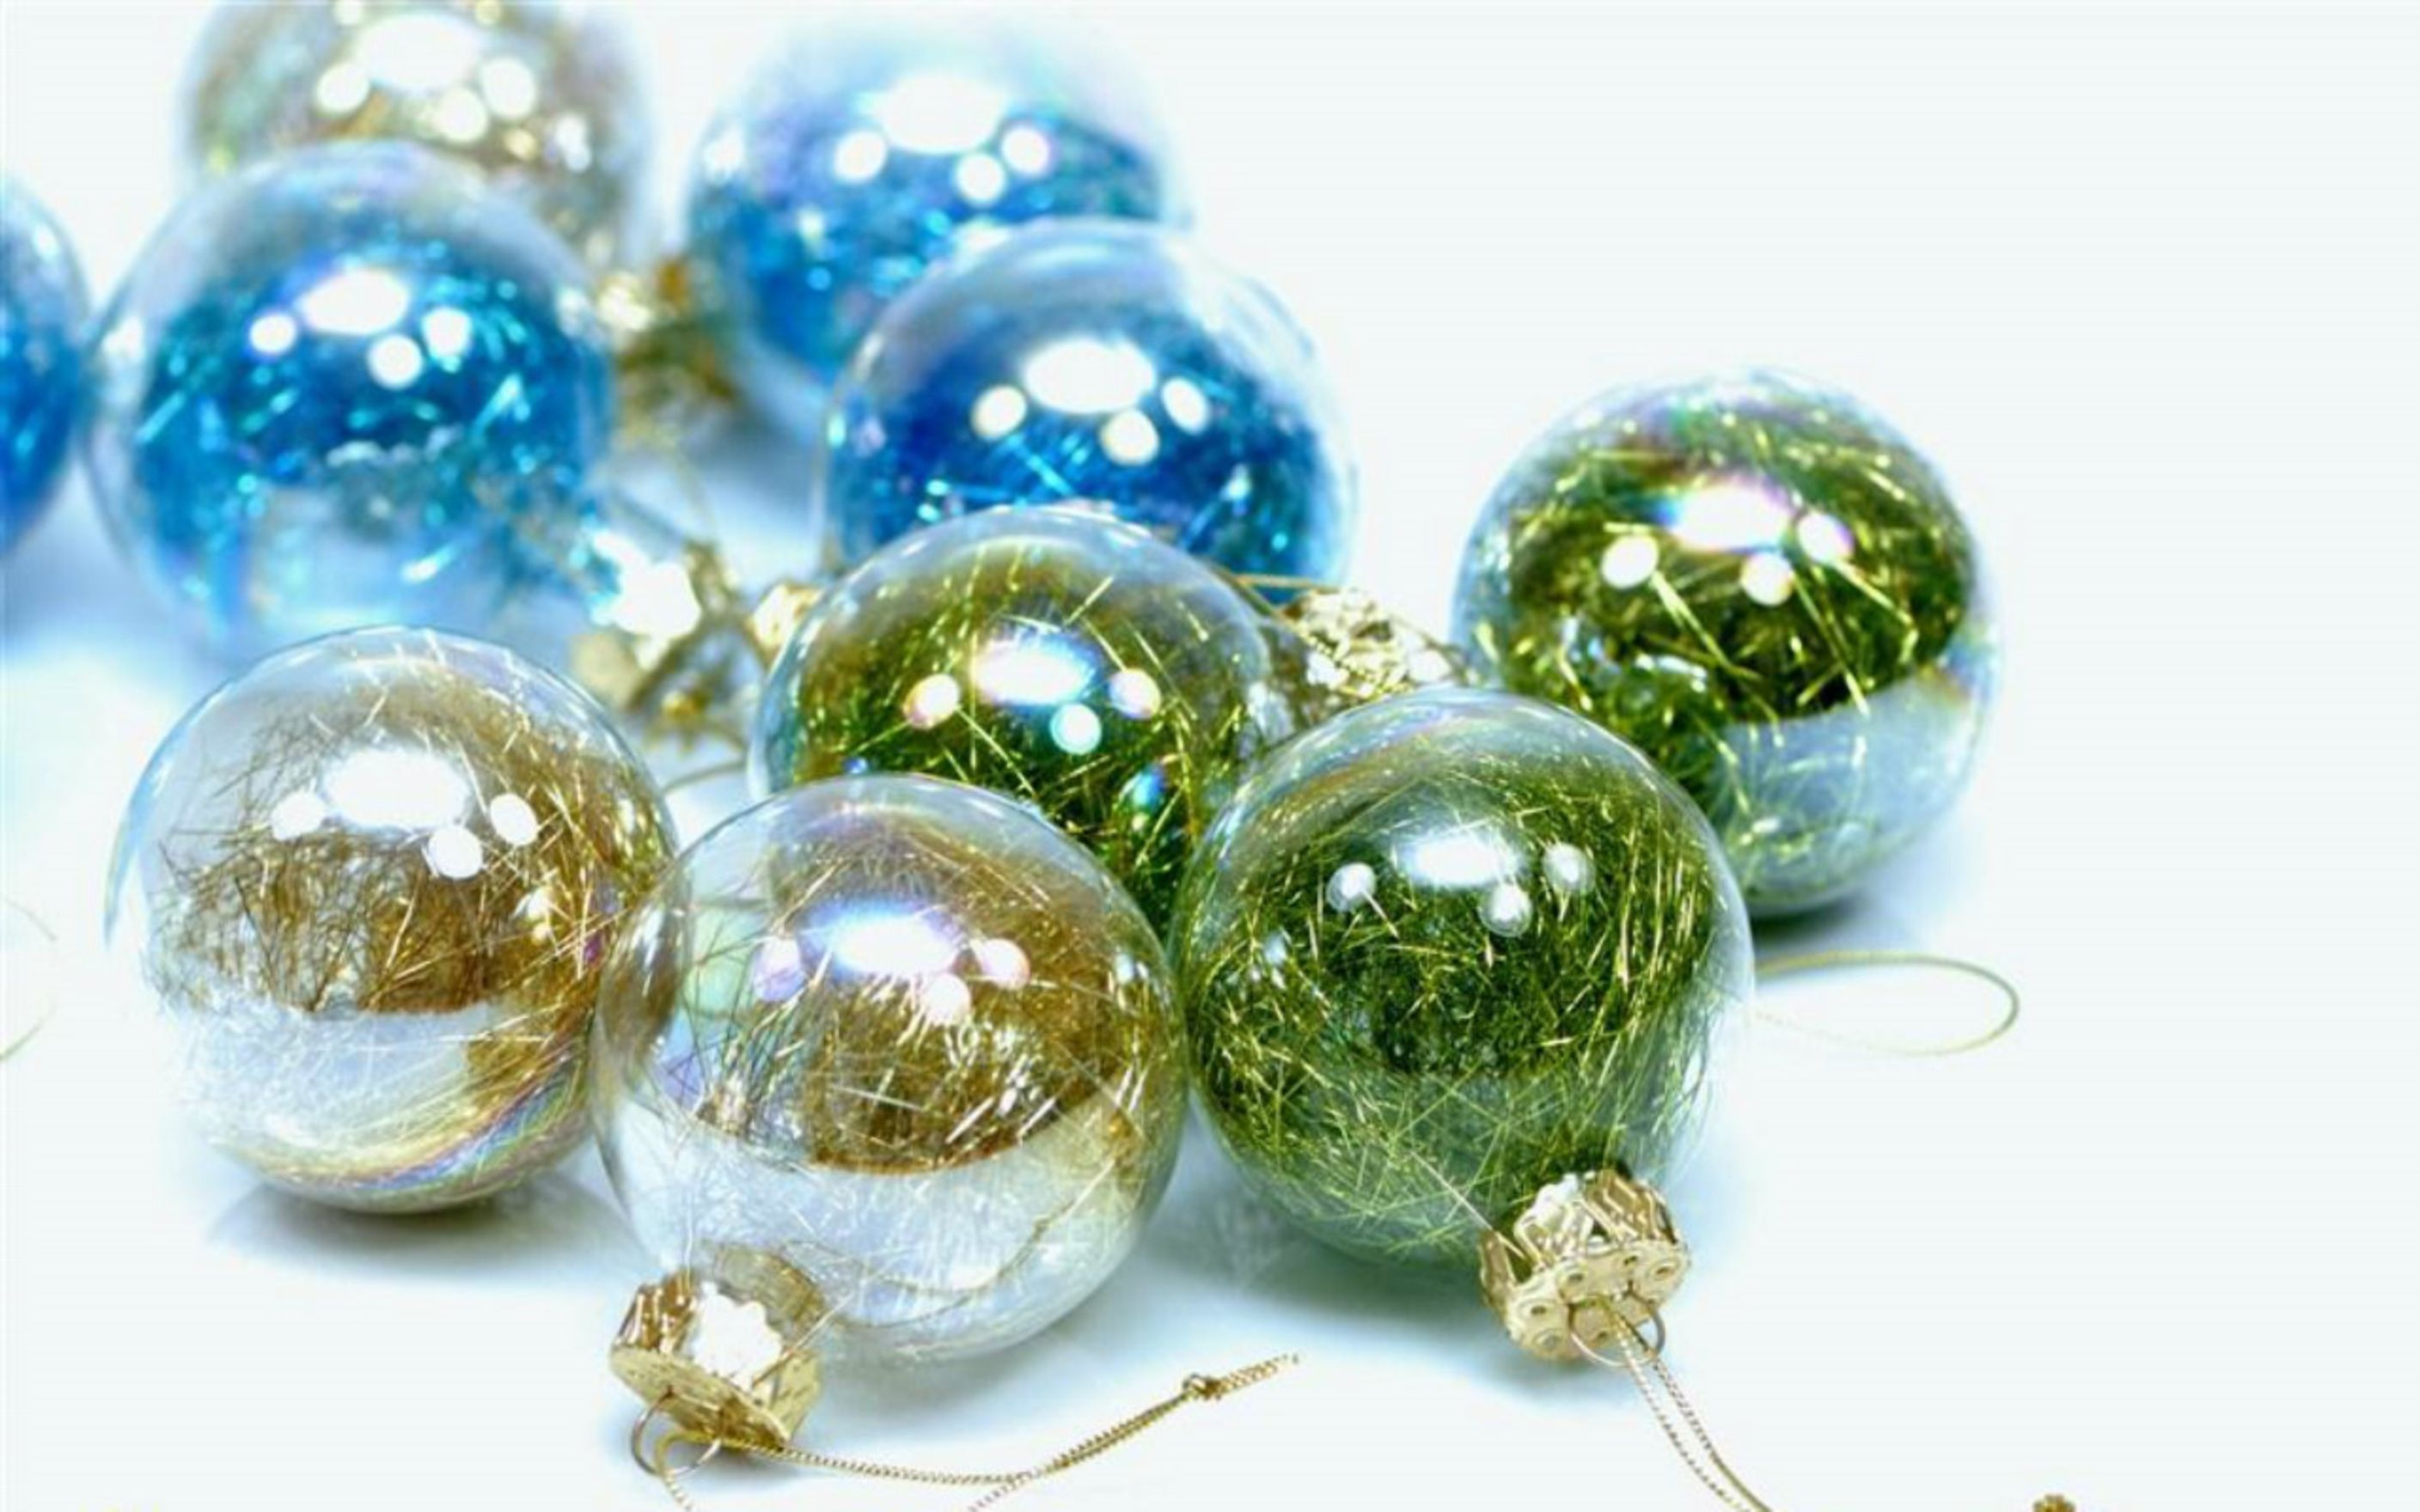 Download free HD Christmas Balls Blue And Green Wallpaper, image